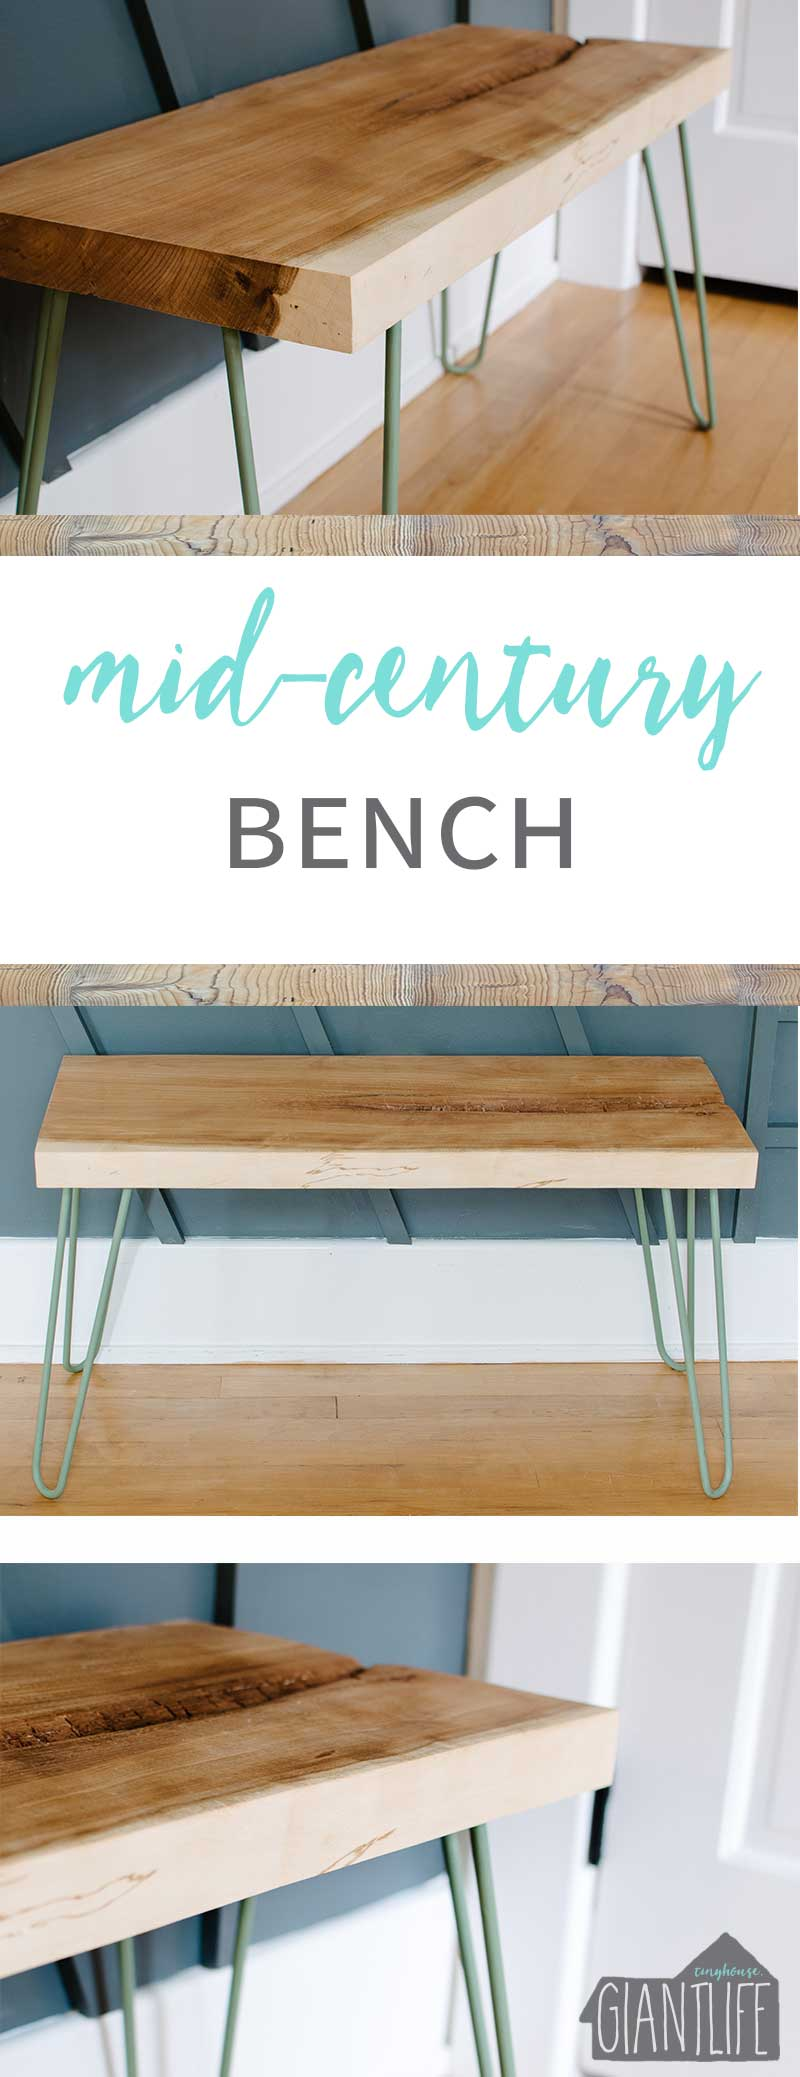 When The Design Plan Takes A Detour | Mid-Century Bench | One Room Challenge Week 4